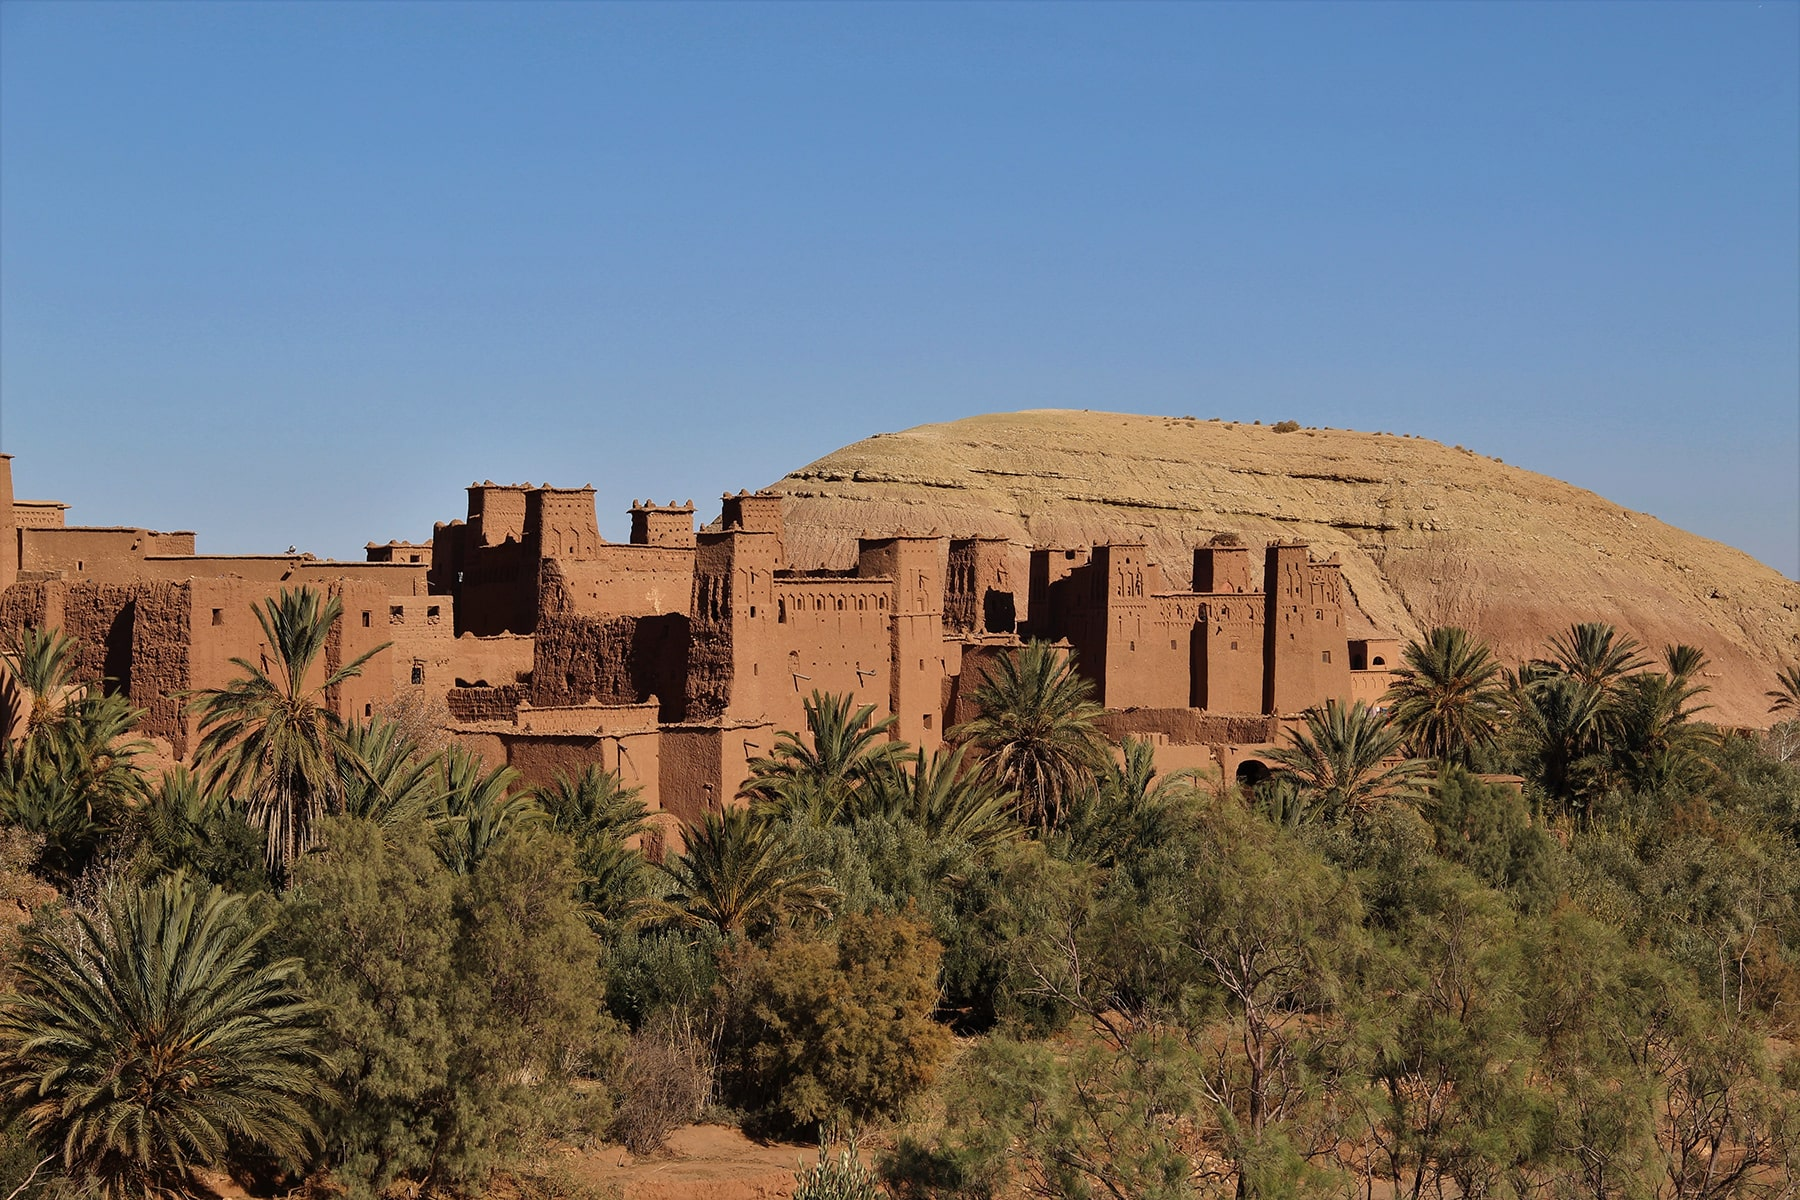 View of Ait Benhaddou kasbah and palm grove